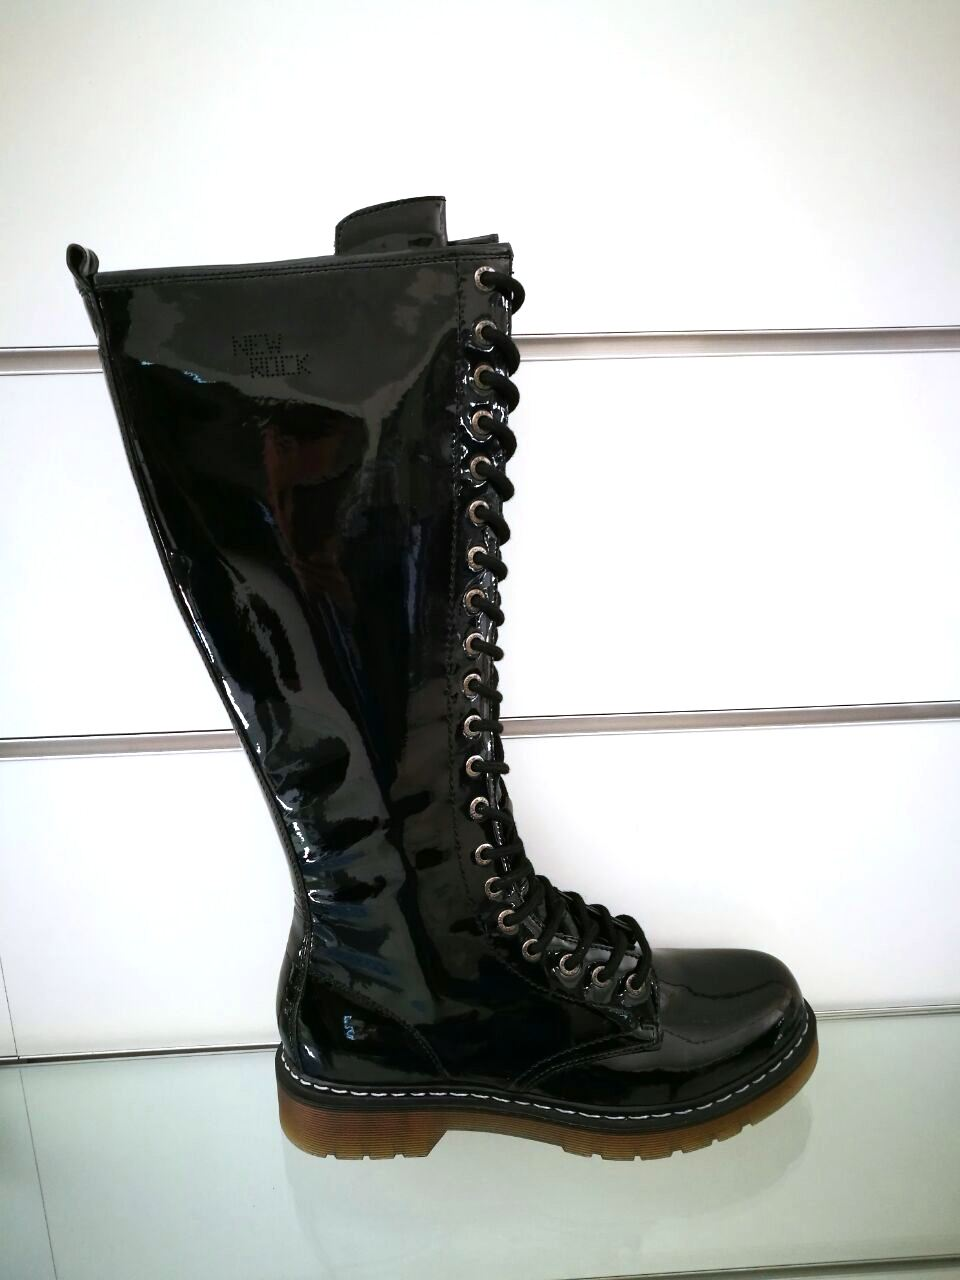 22761 - Stocklot New Rock boots Europe